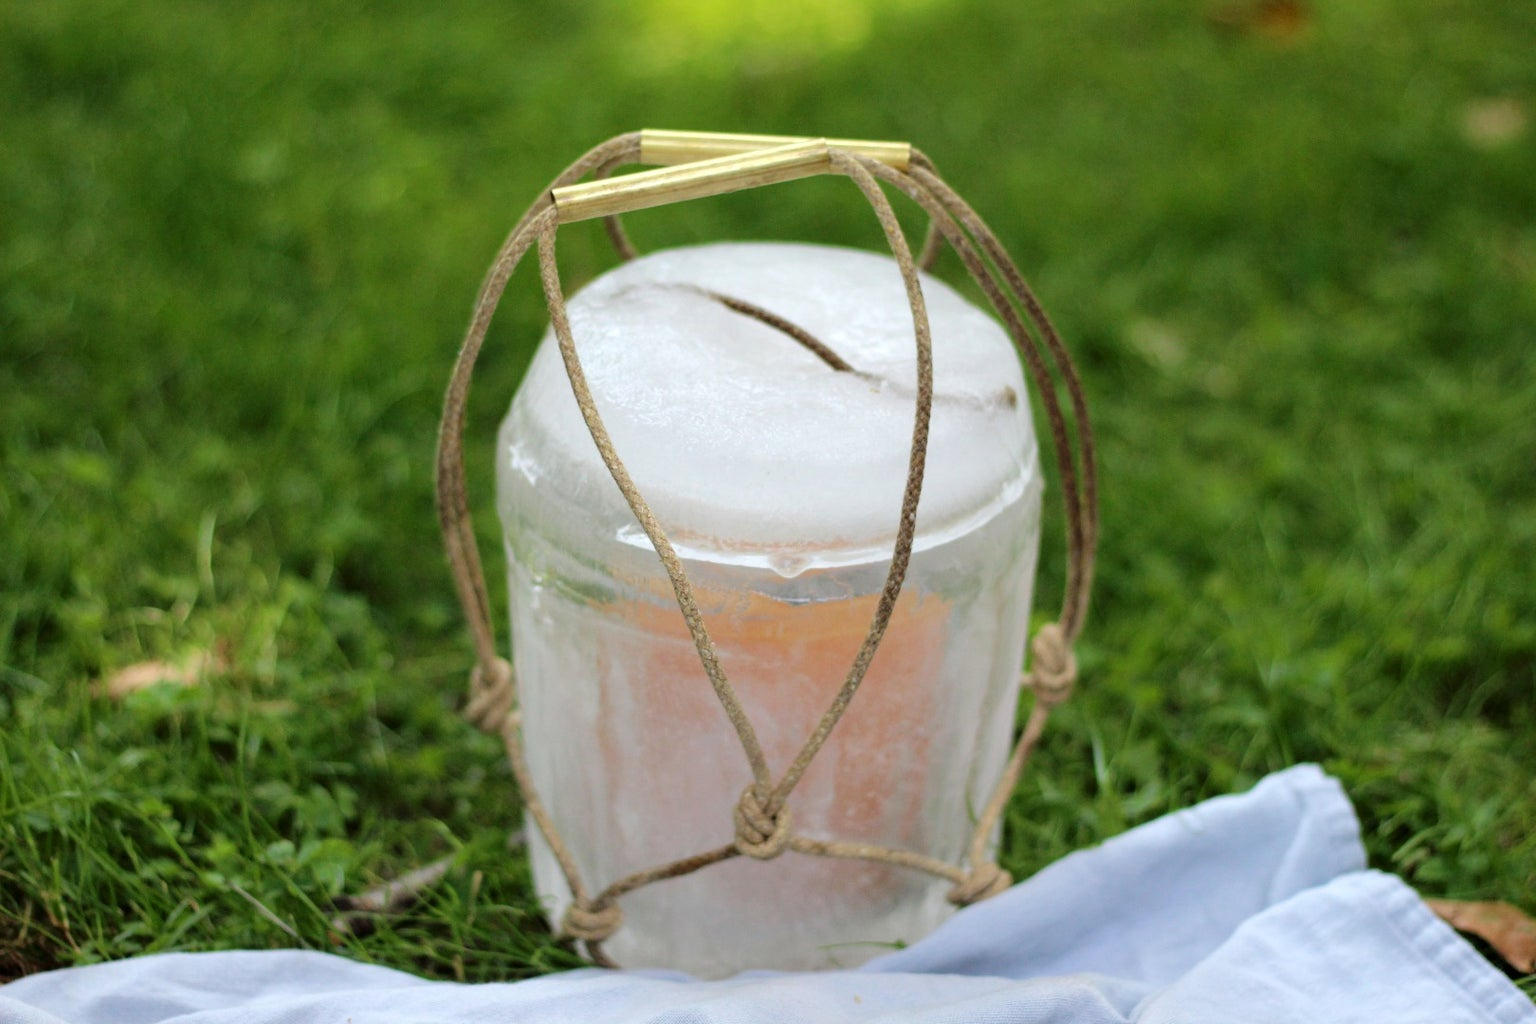 Mini Cooler Made of Ice